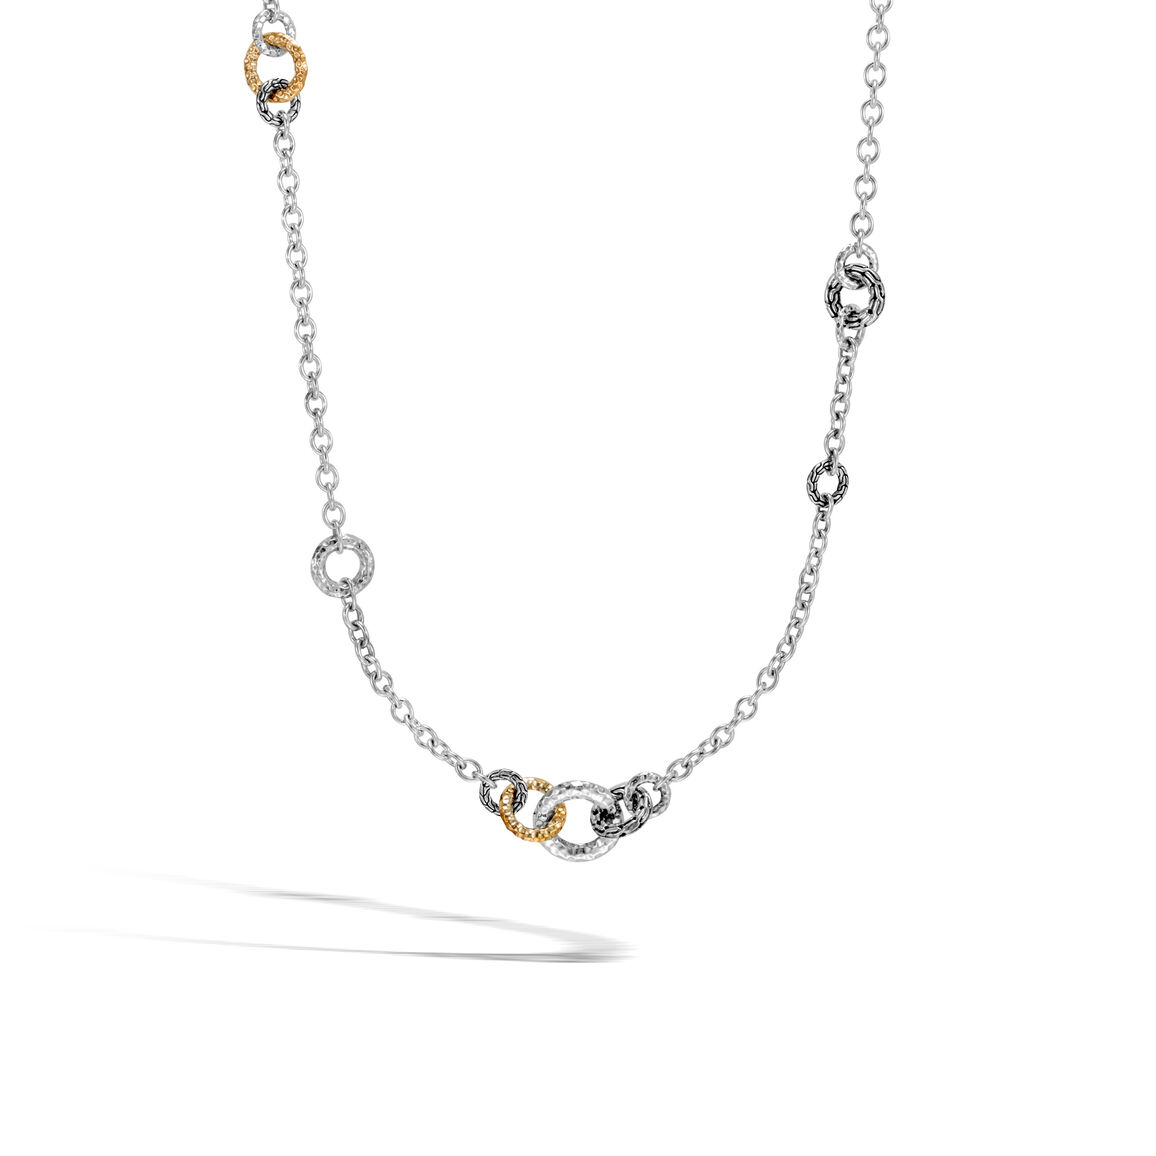 Classic Chain Link Sautoir Necklace, Silver, Hammered Gold